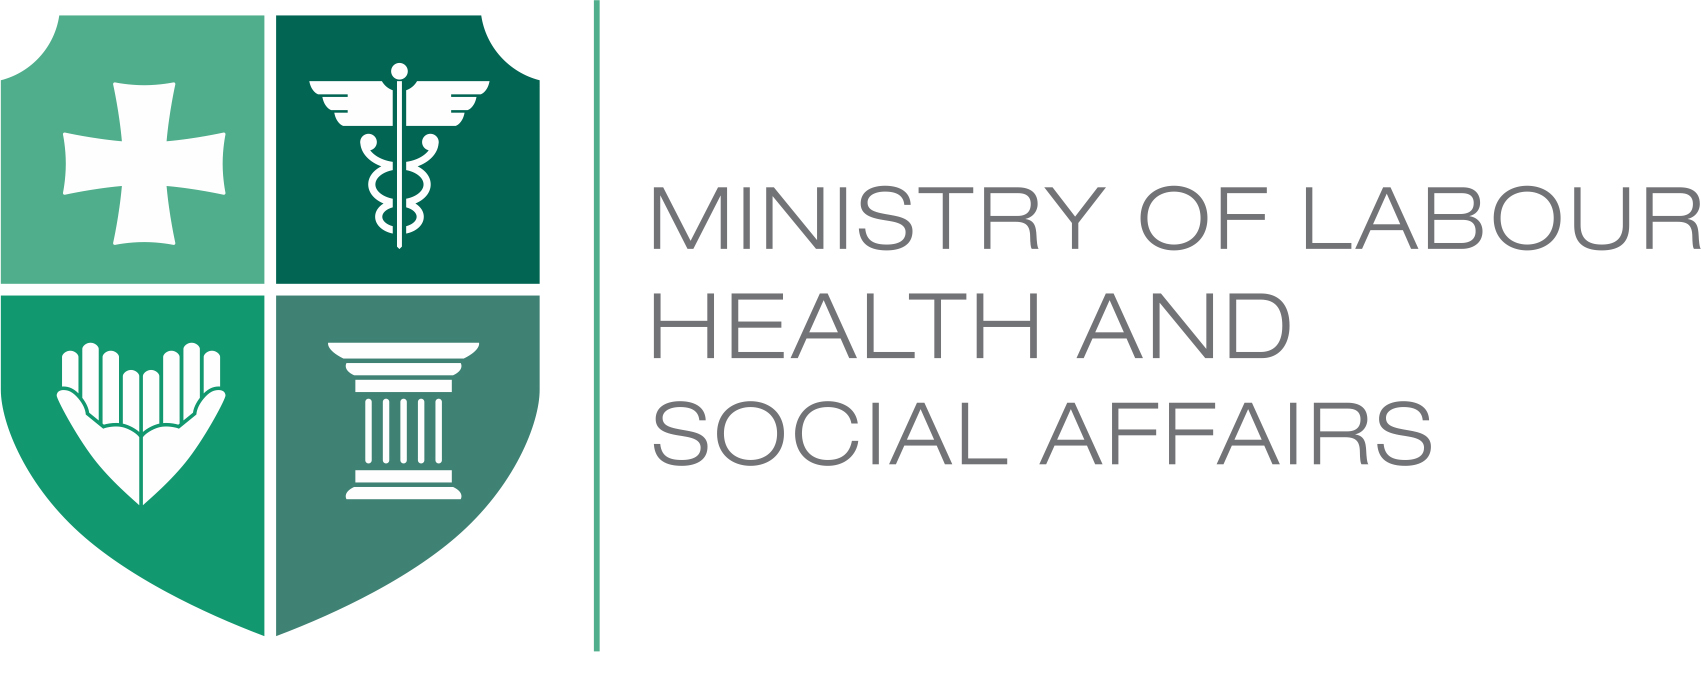 Ministry of Labour Health and Social Affairs